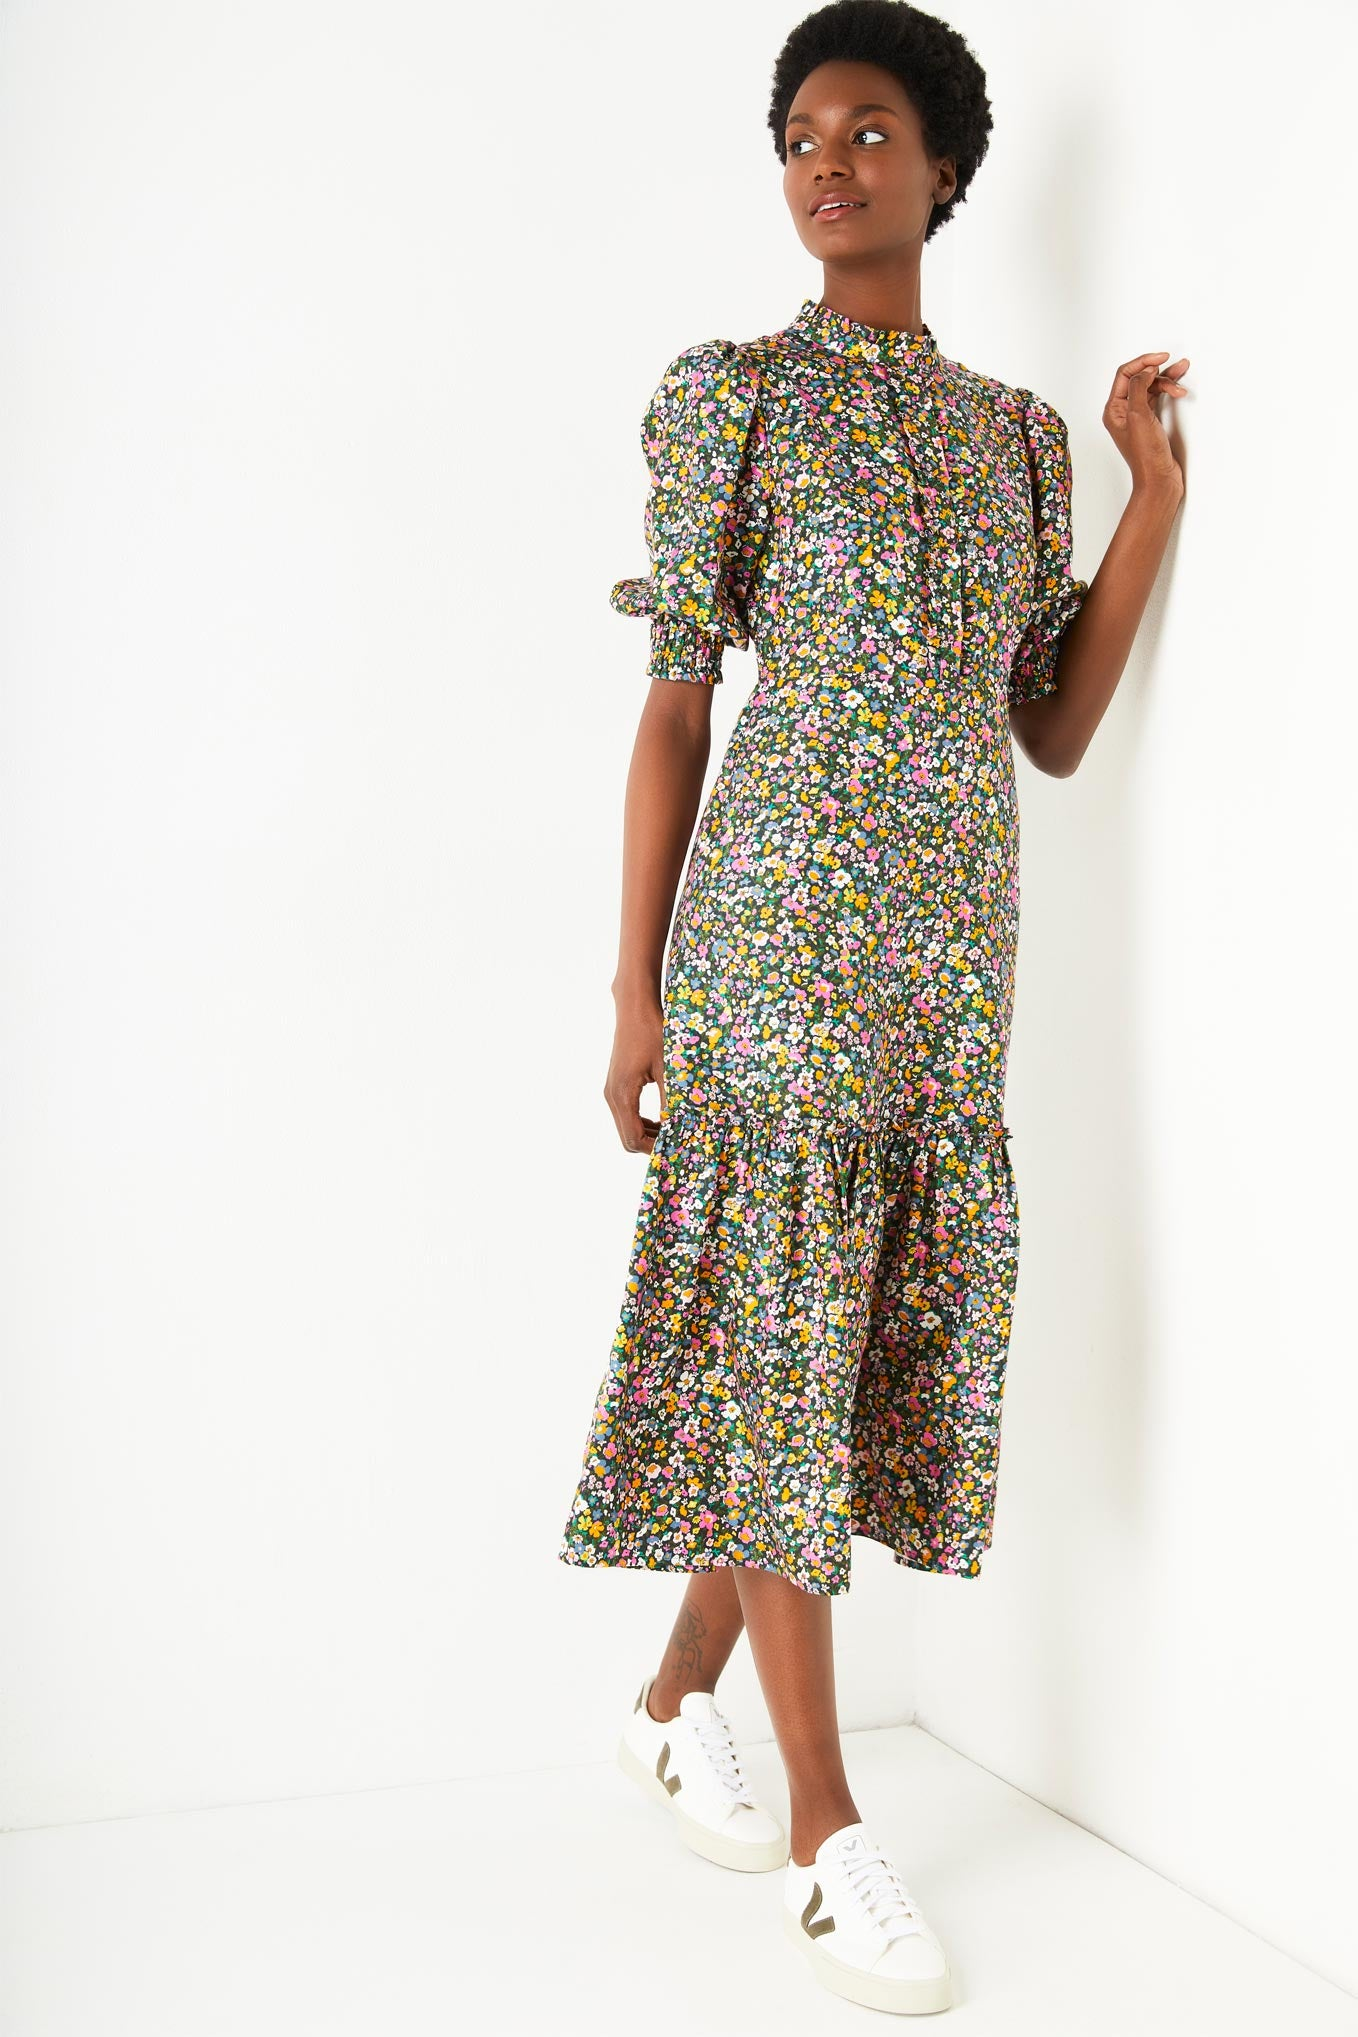 Celina 70s Ditsy Print Dress - Multi